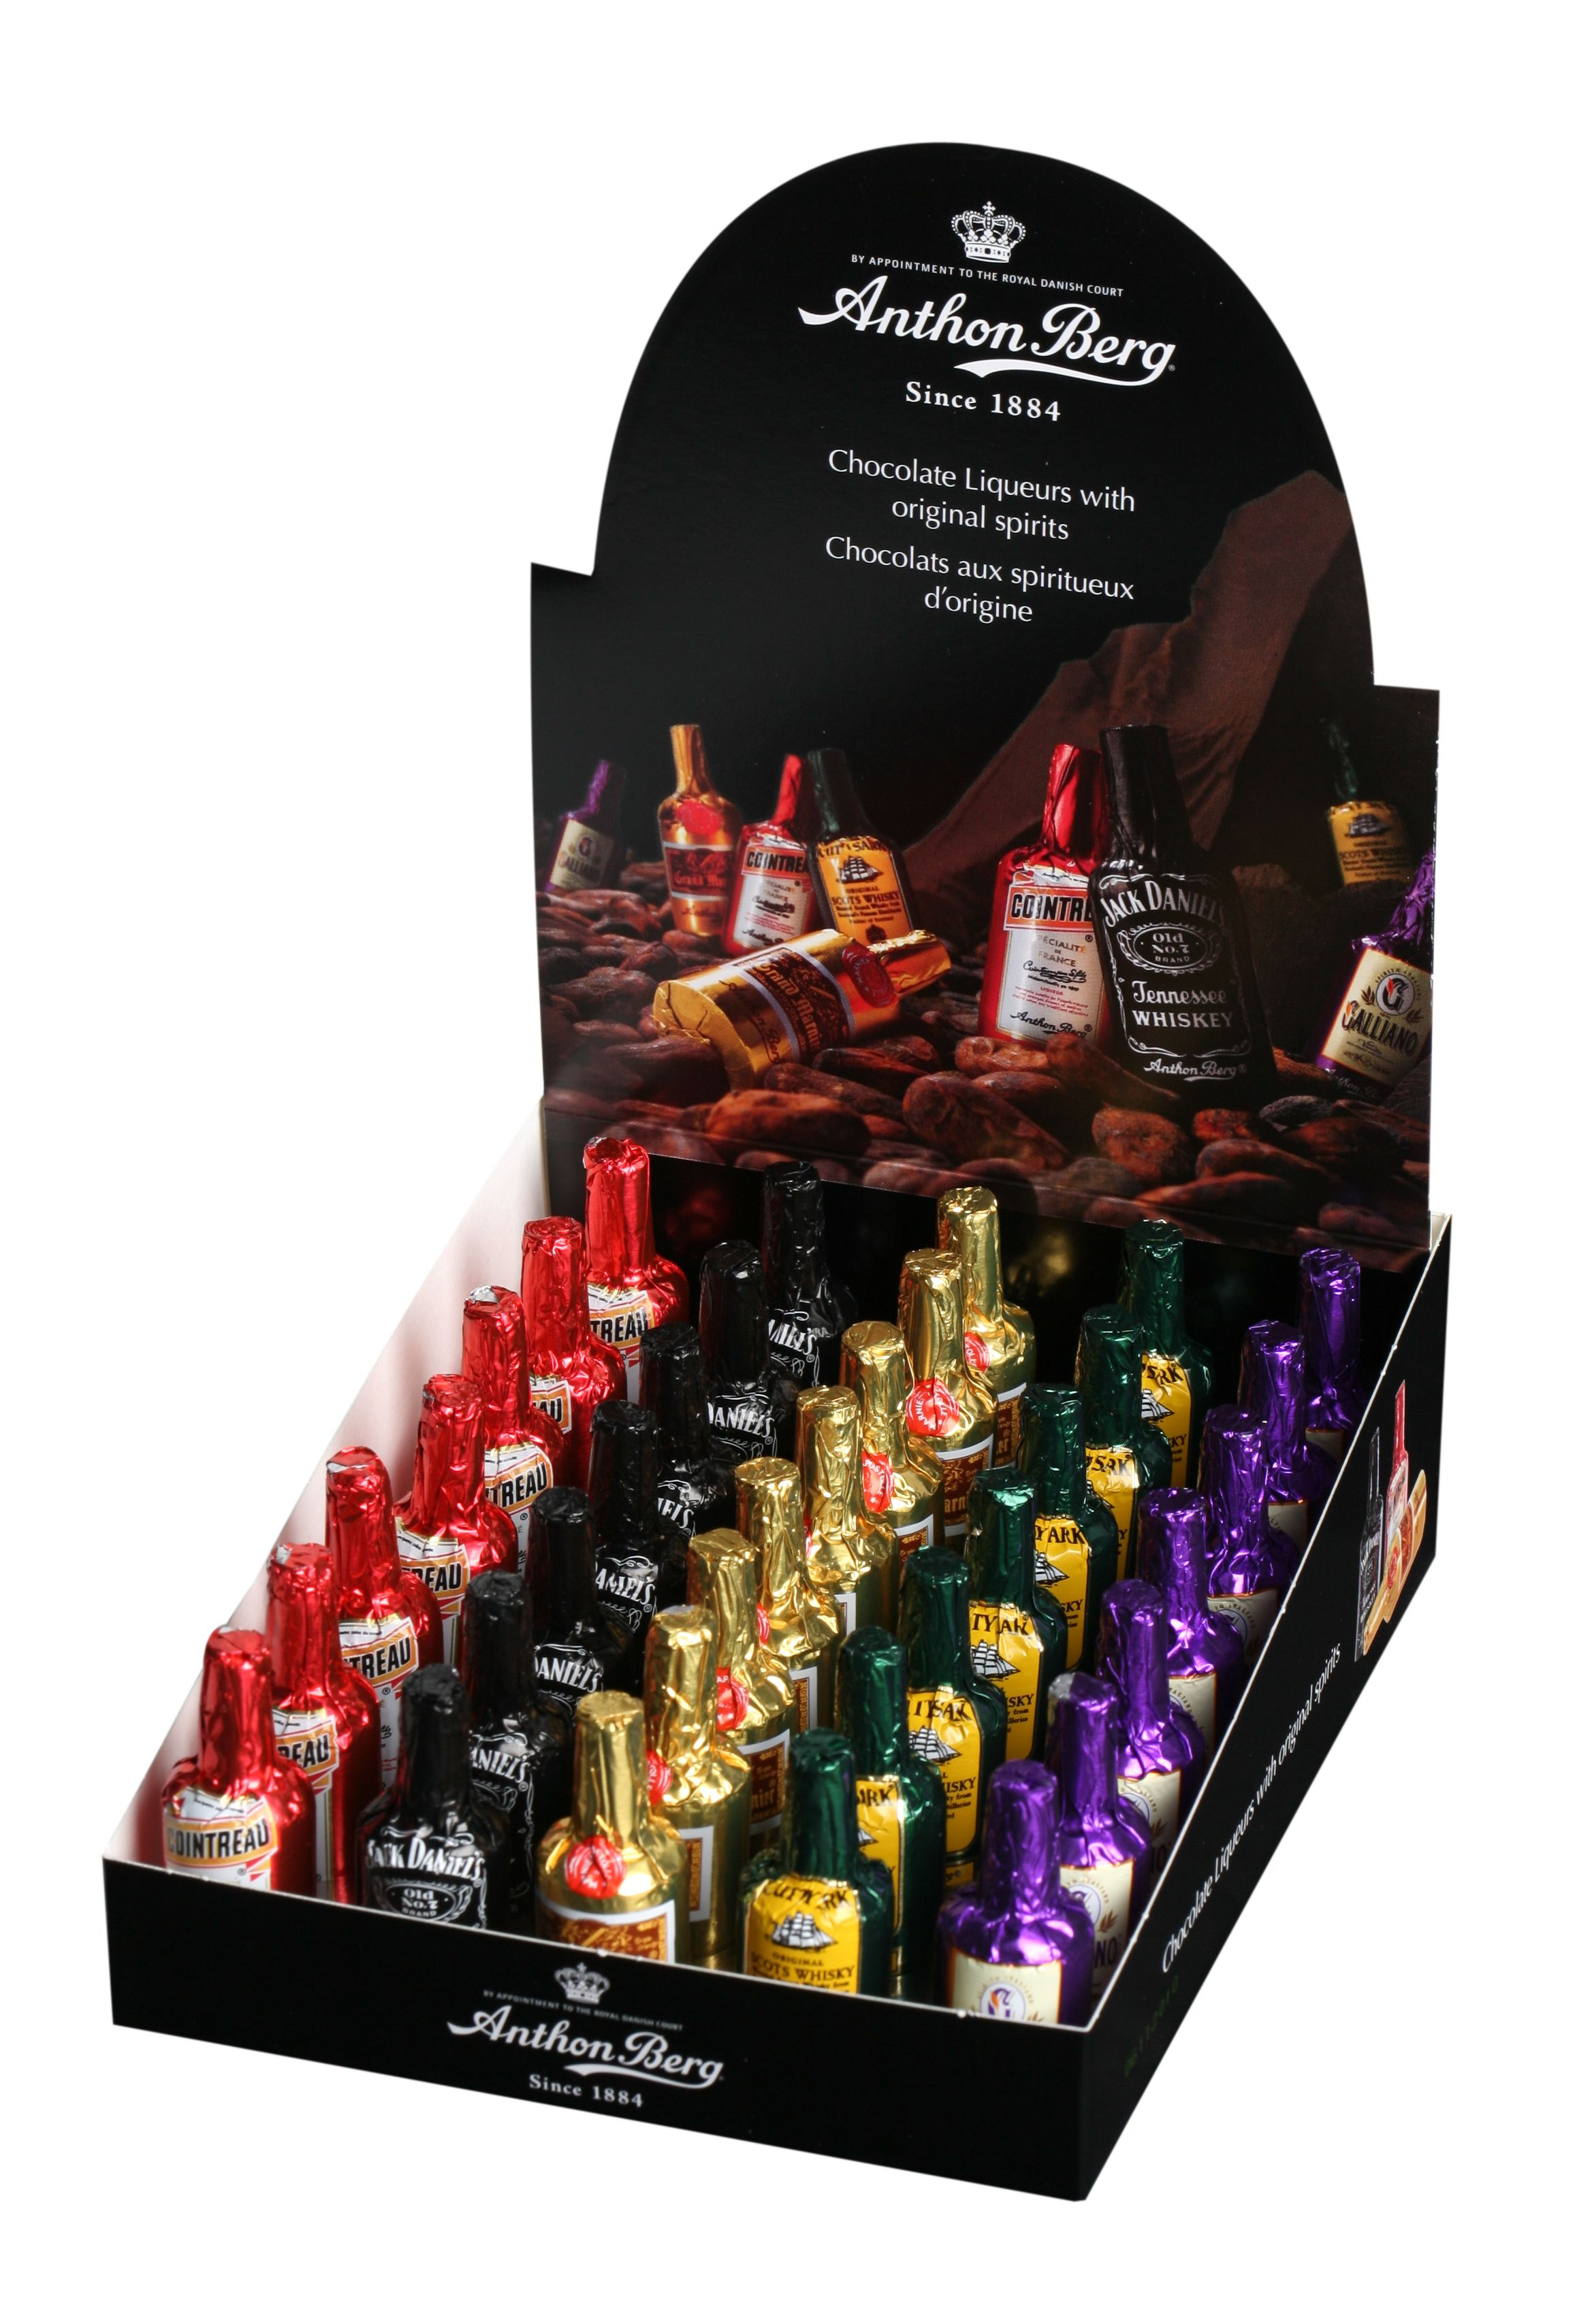 Liquor Filled Chocolate Bottles Costco. Anthon Berg Chocolate ...